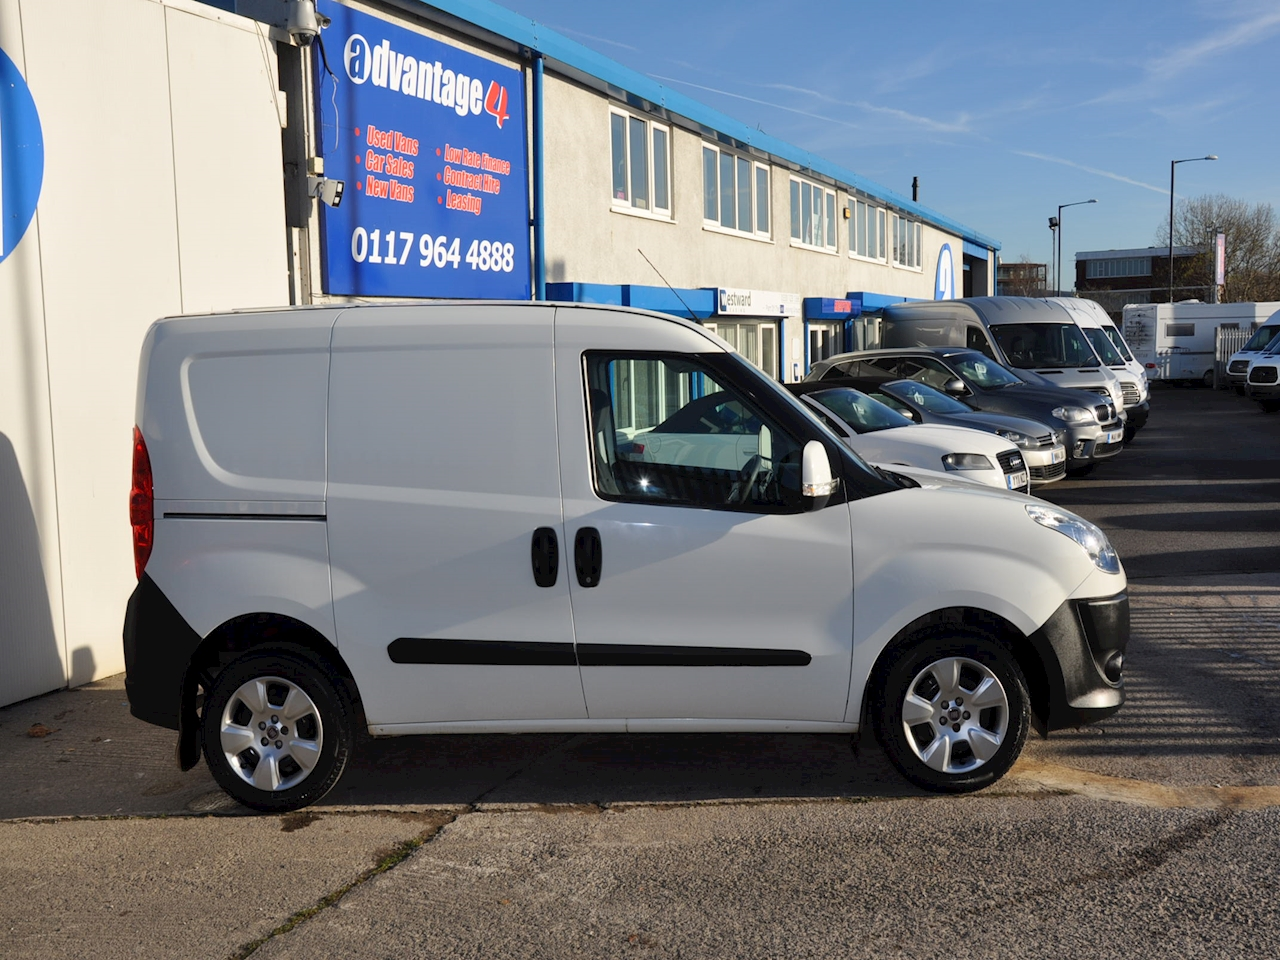 used fiat doblo cargo 16v sx multijet 2011 advantage4vans. Black Bedroom Furniture Sets. Home Design Ideas